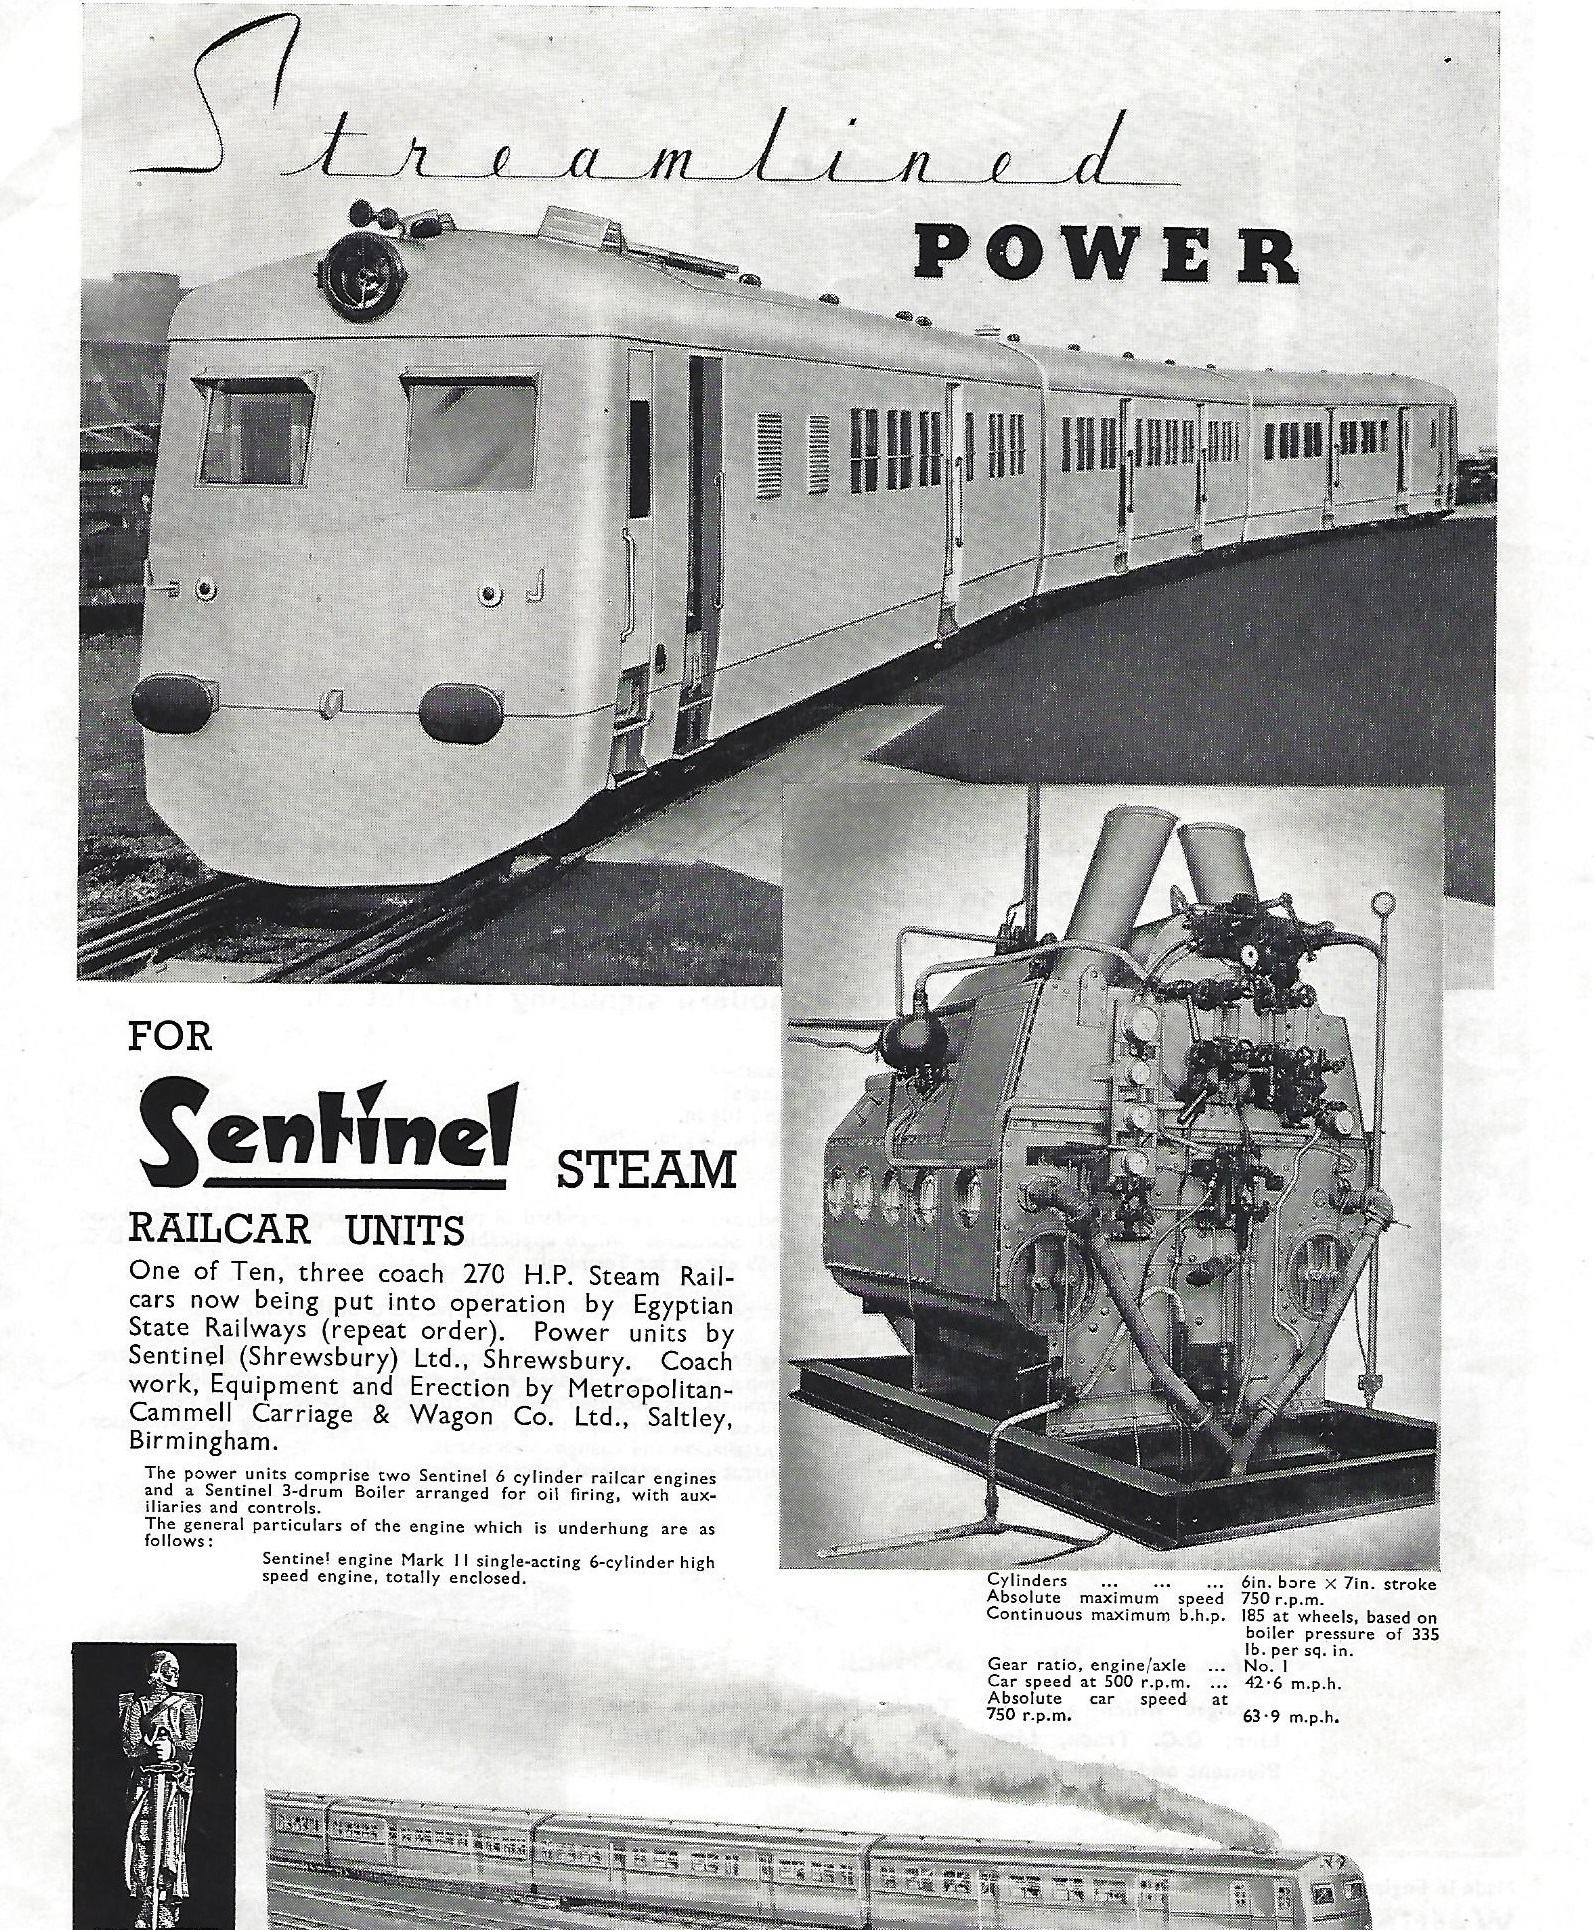 A contemporary advert for the Sentinel Egyptian Steam Multiple Units